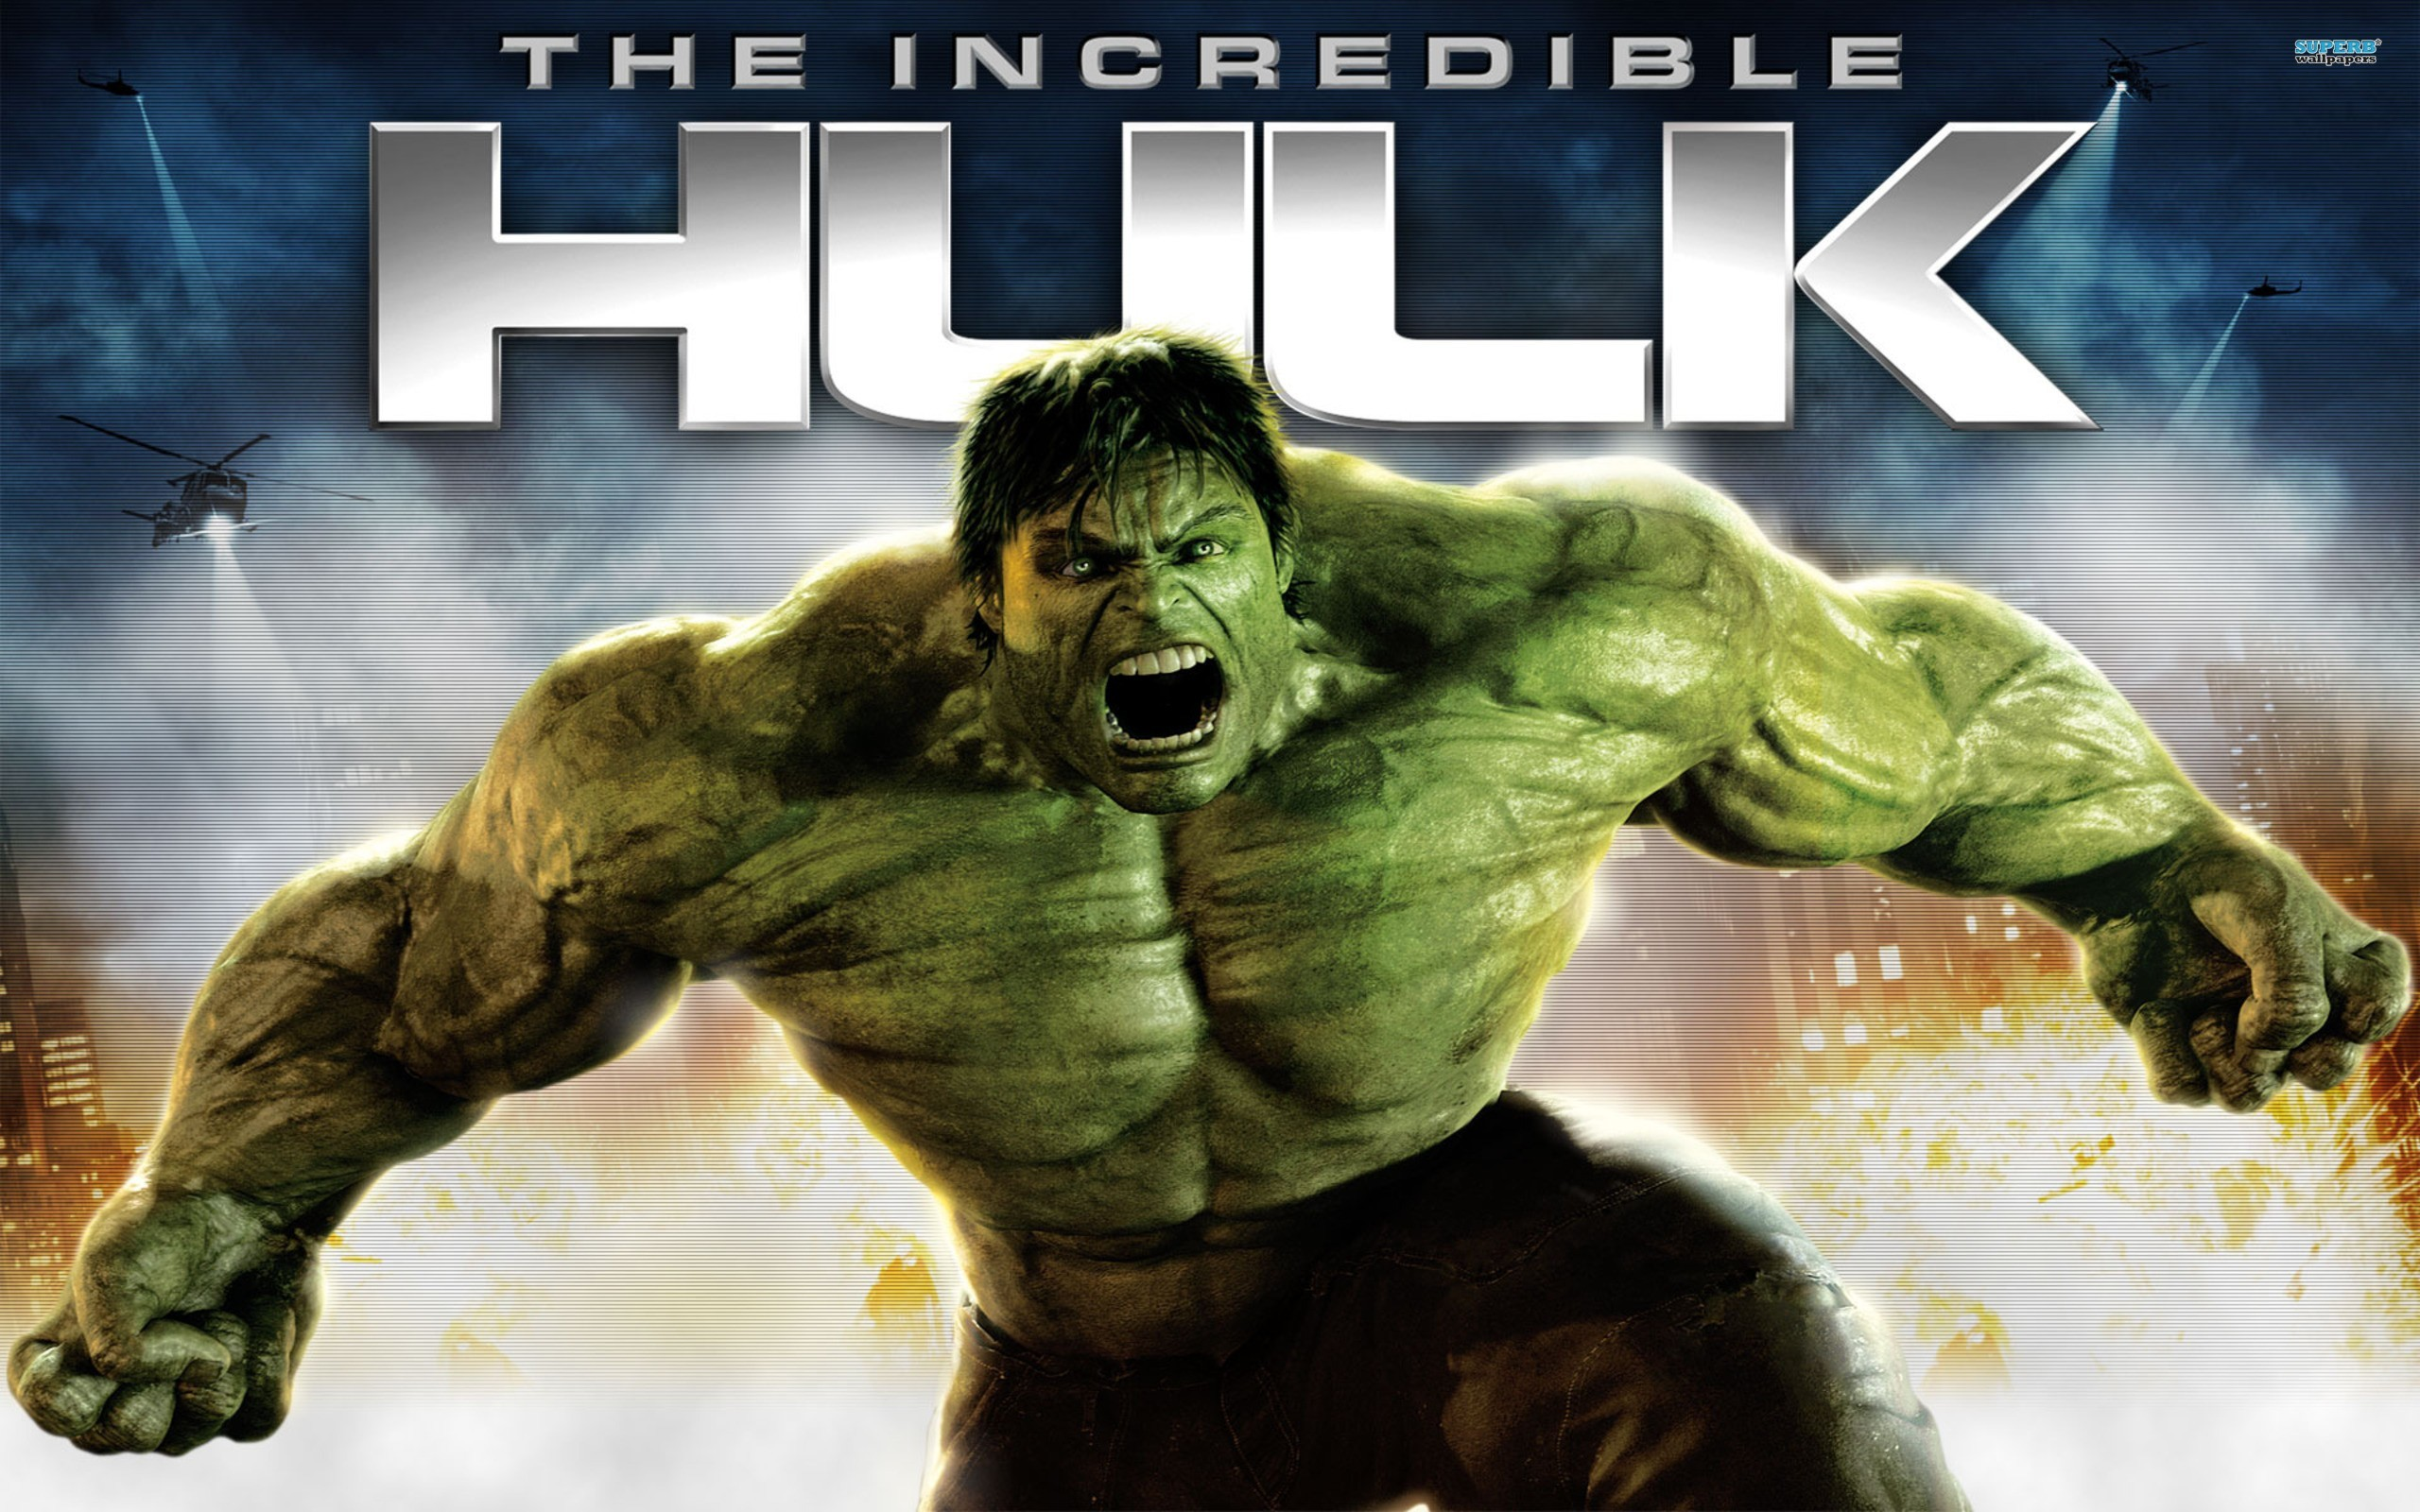 Movie posters the incredible hulk wallpaper allwallpaper 13059 movie posters the incredible hulk wallpaper voltagebd Choice Image